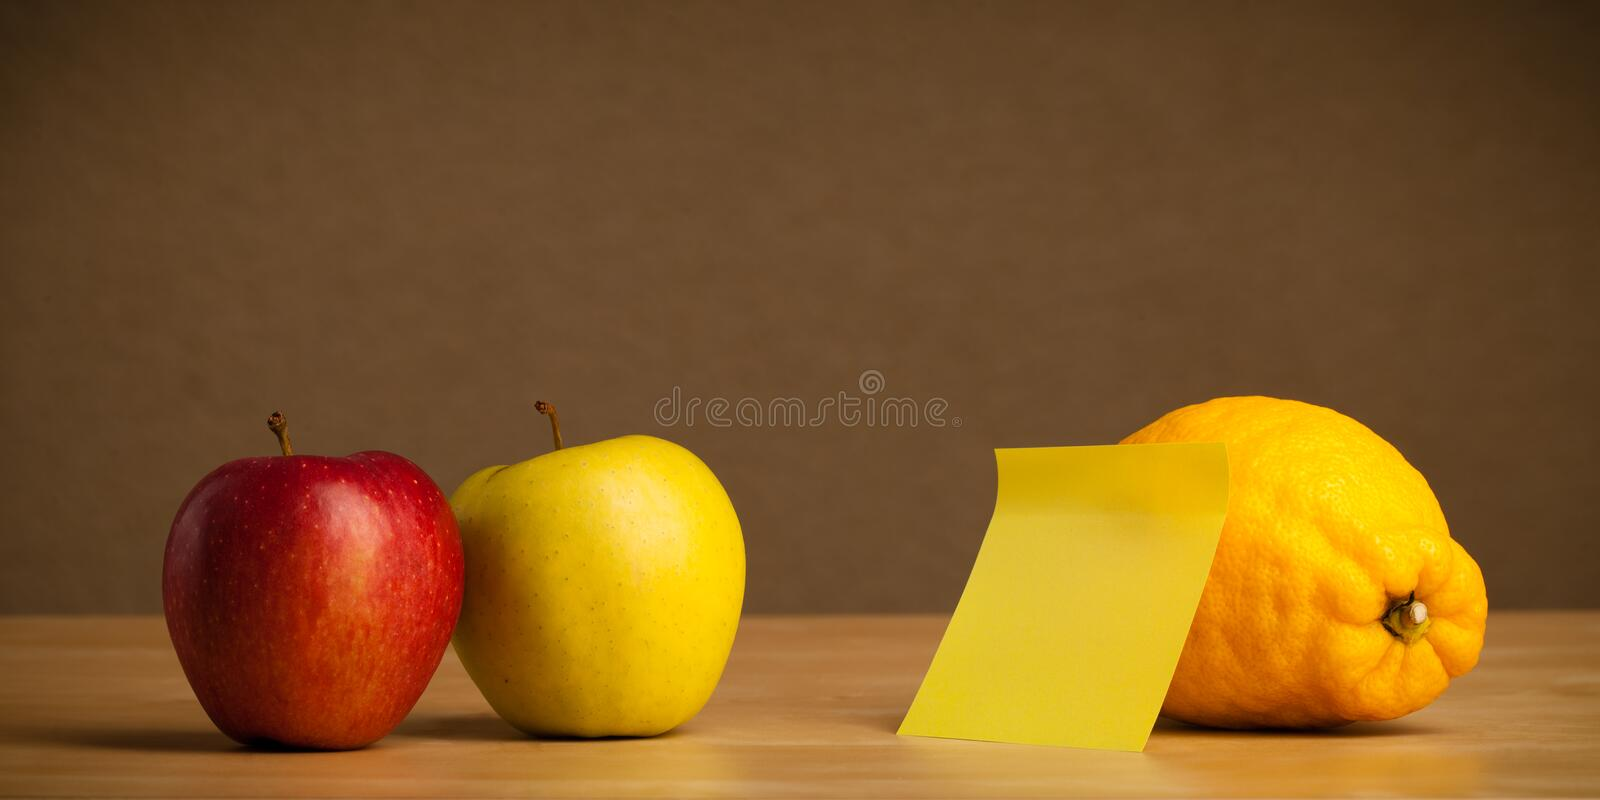 Empty post-it note sticked on fruit. Fruit with empty sticky note royalty free stock images